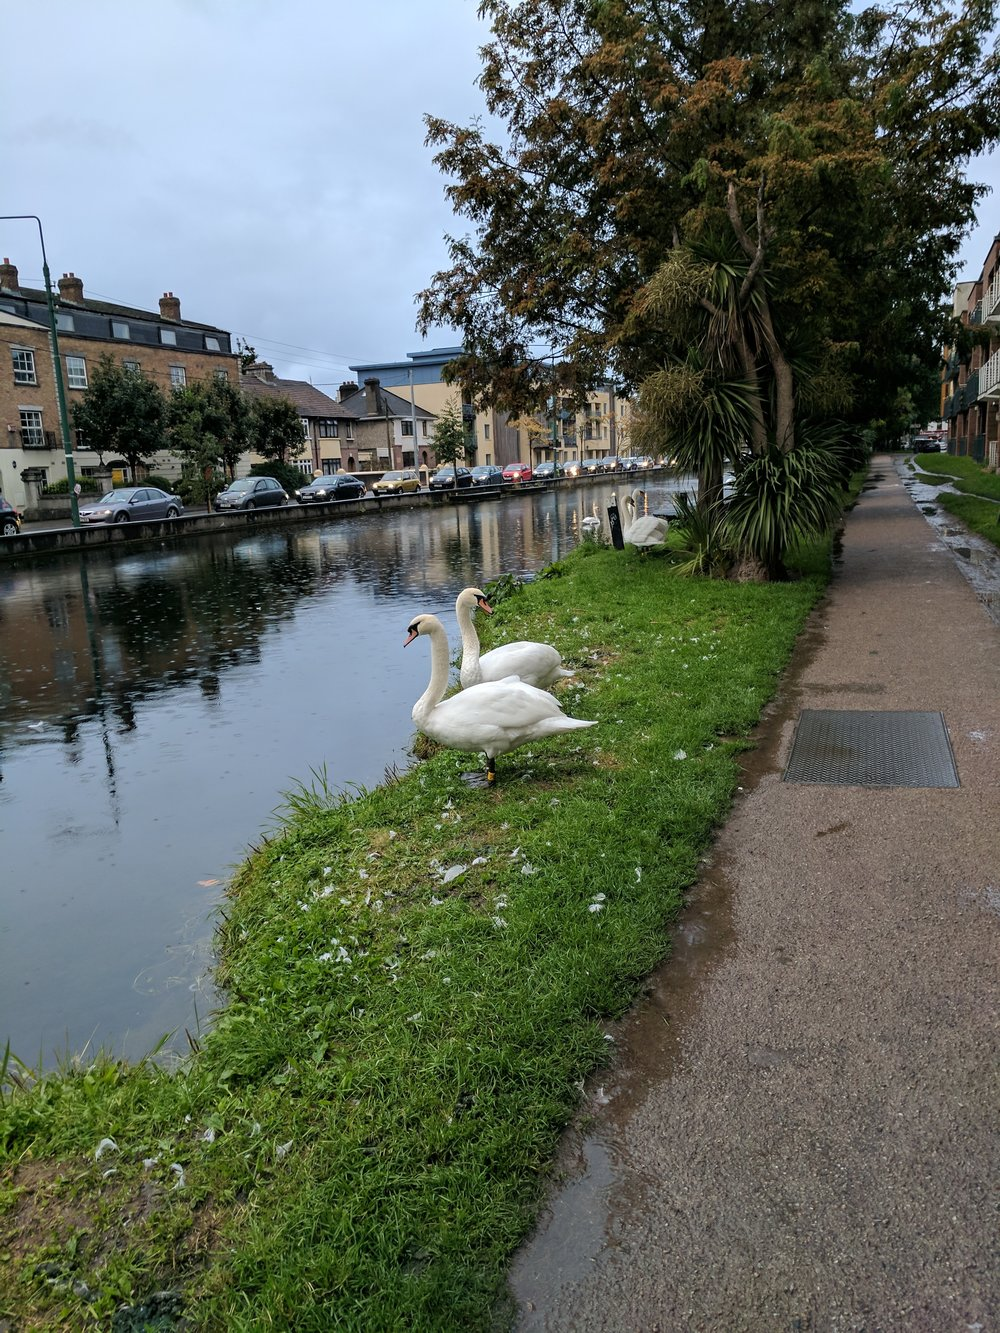 Swans or Geese?